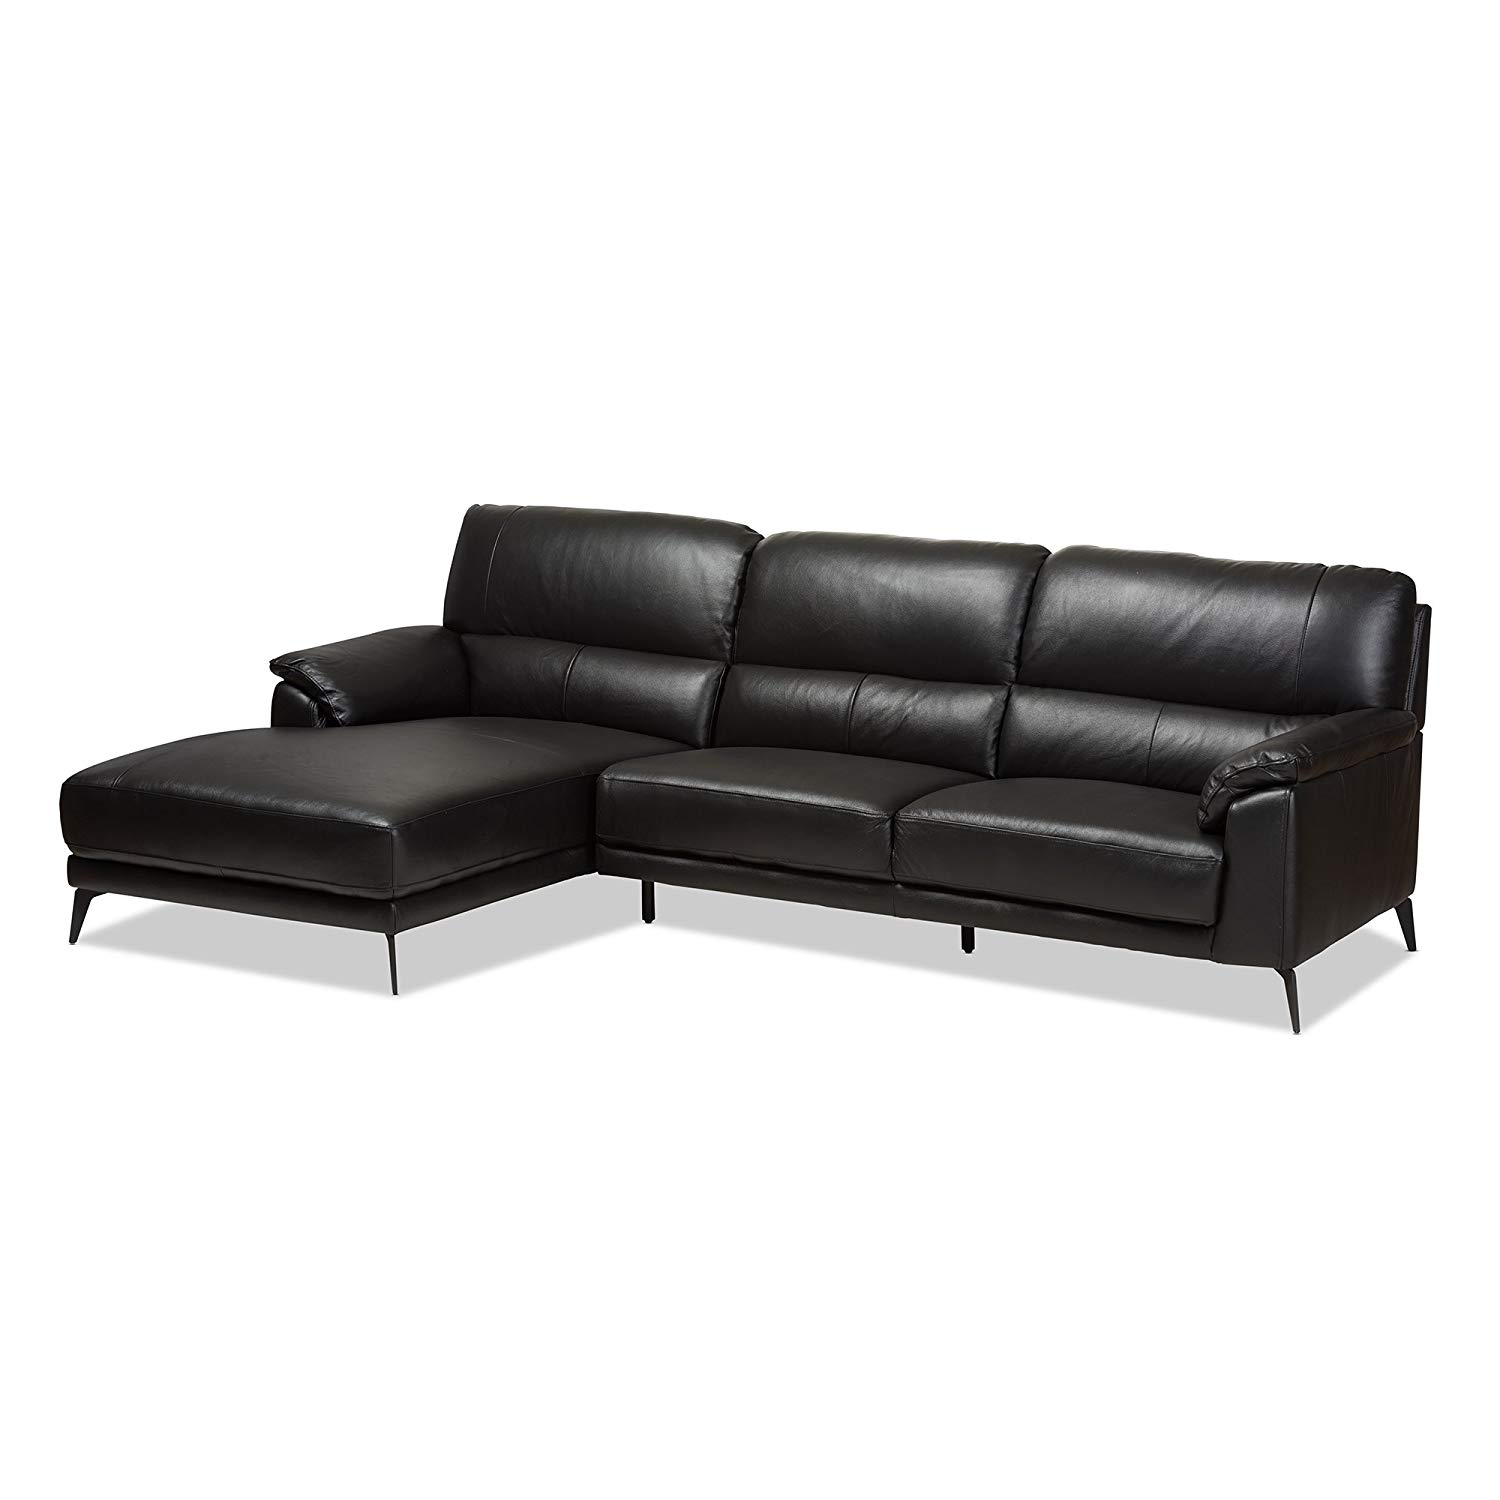 Baxton Studio Radford 2 Piece Leather Left Facing Sectional in Black